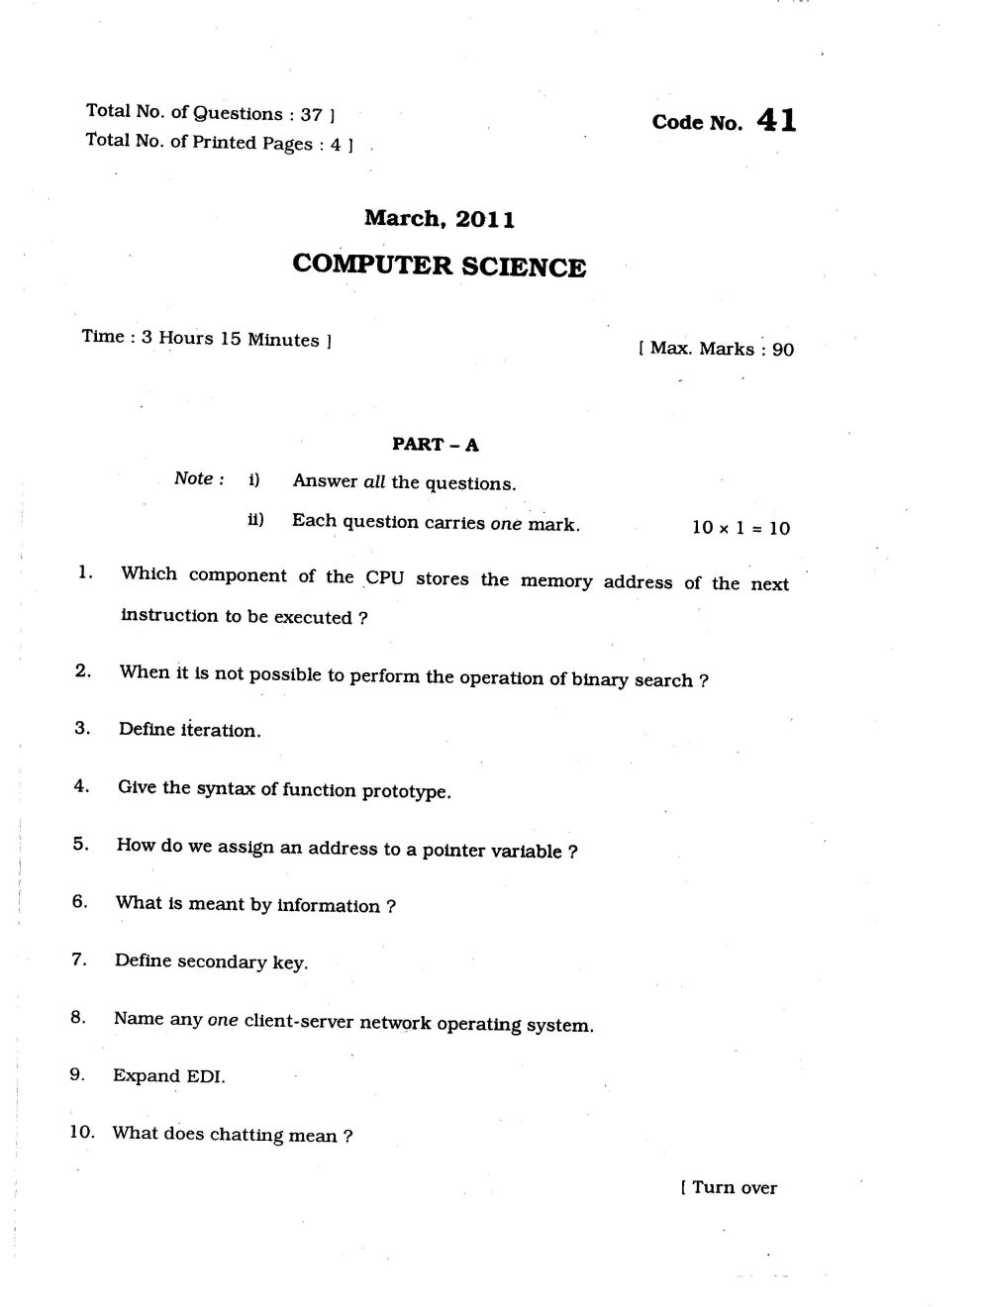 nd puc question papers of computer studychacha what is meant by information define secondary key any one client server network operating system what does chatting mean